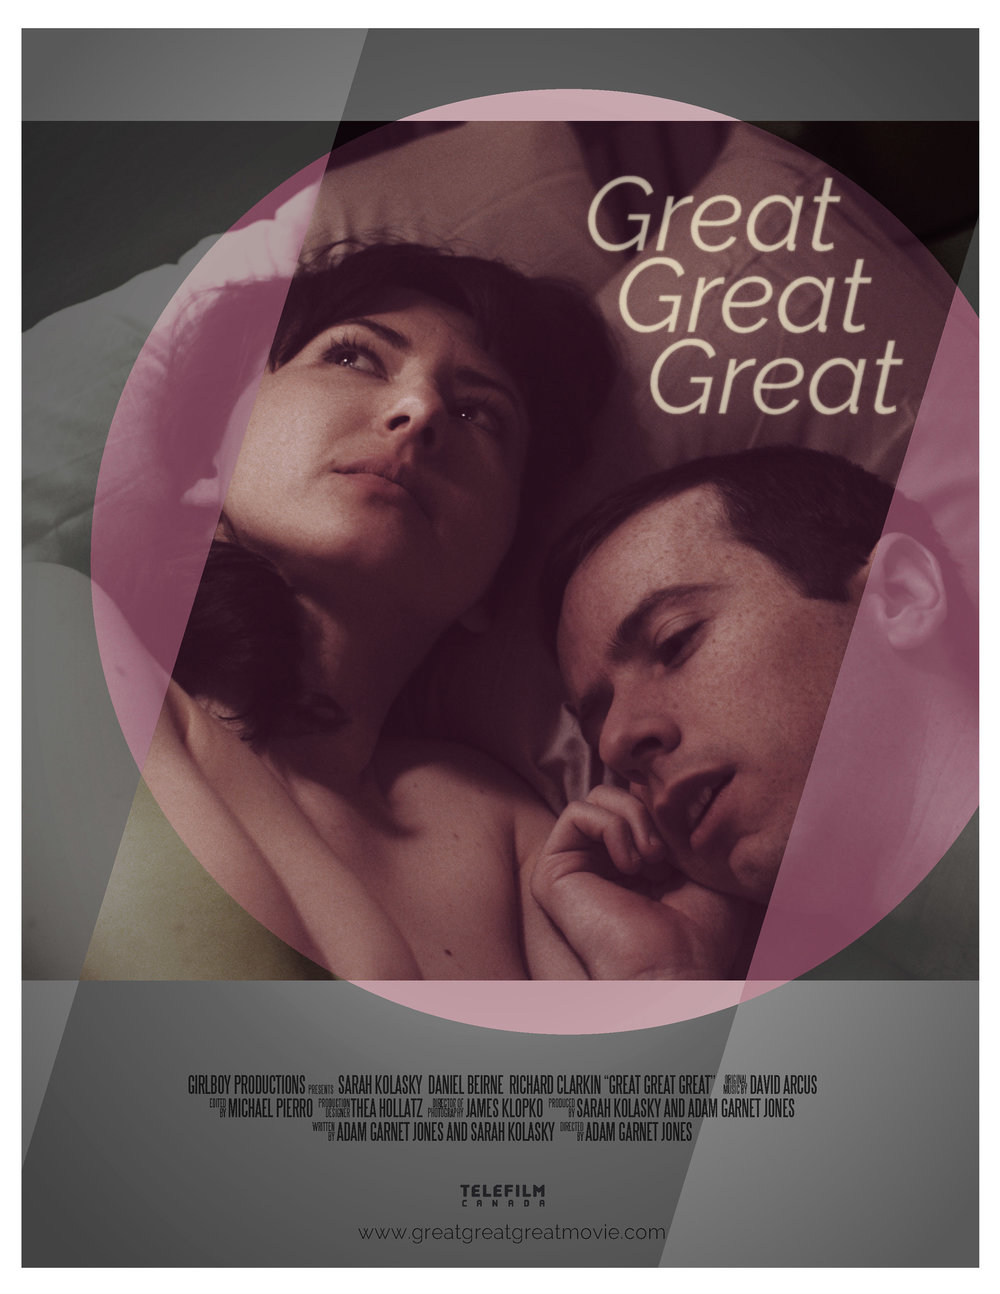 Sarah Kolasky, Adam Garnet Jones, Great Great Great, Dan Beirne, Official poster